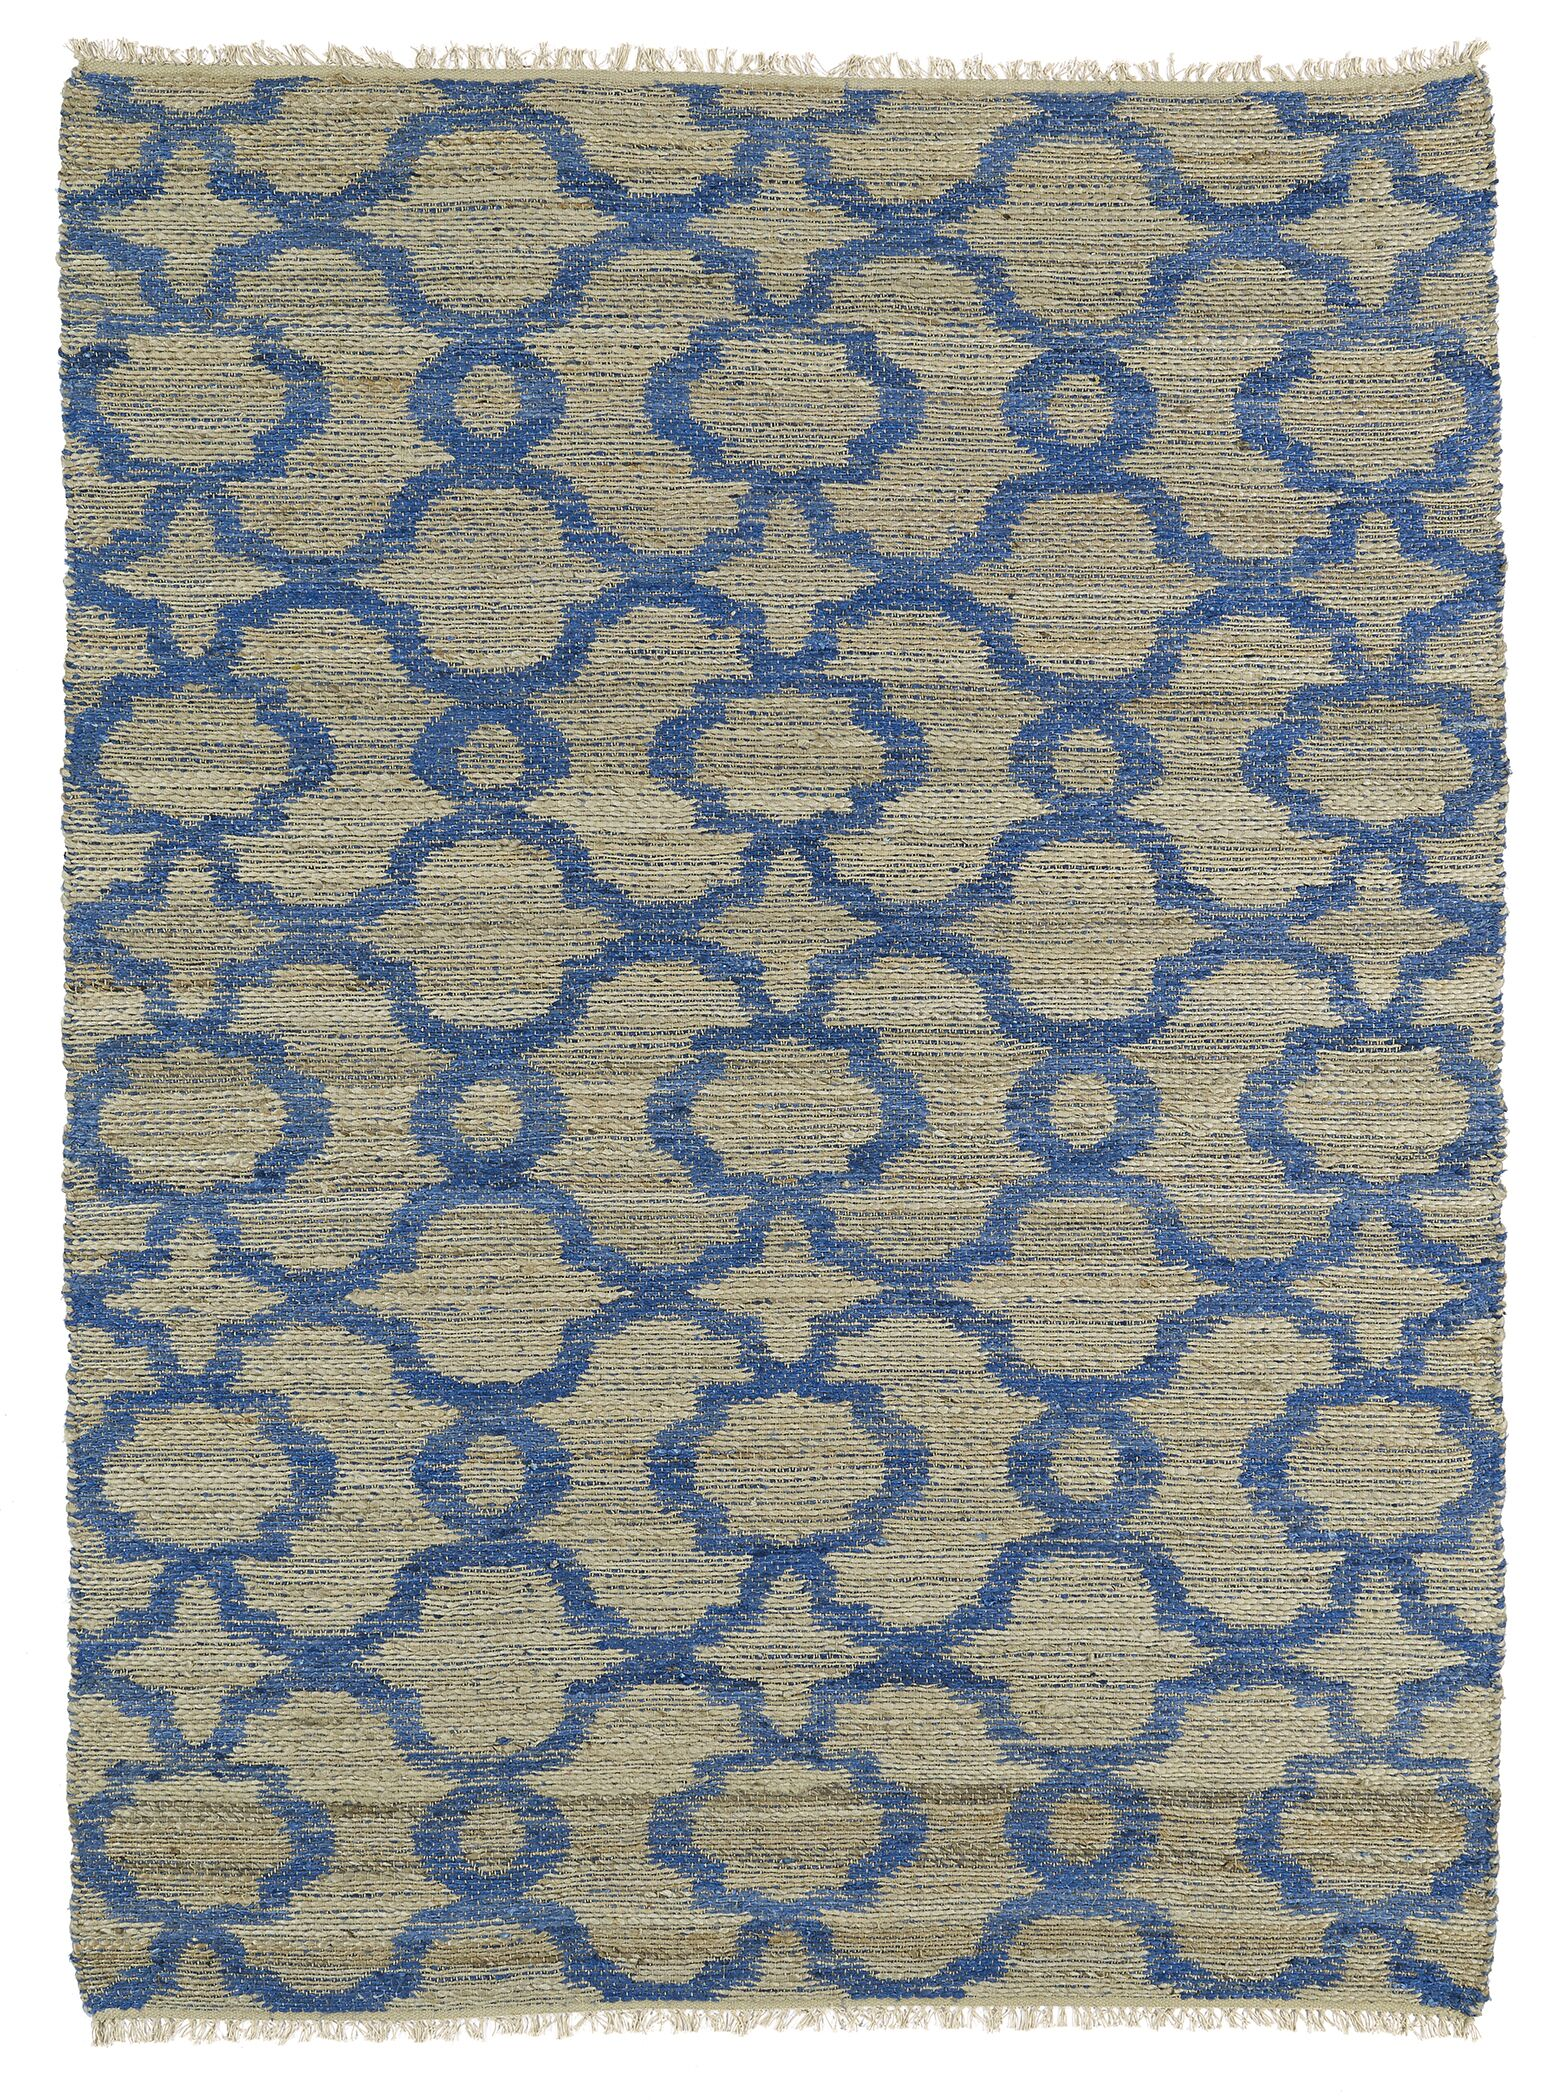 Coatsburg Blue Area Rug Rug Size: Rectangle 5' x 7'9